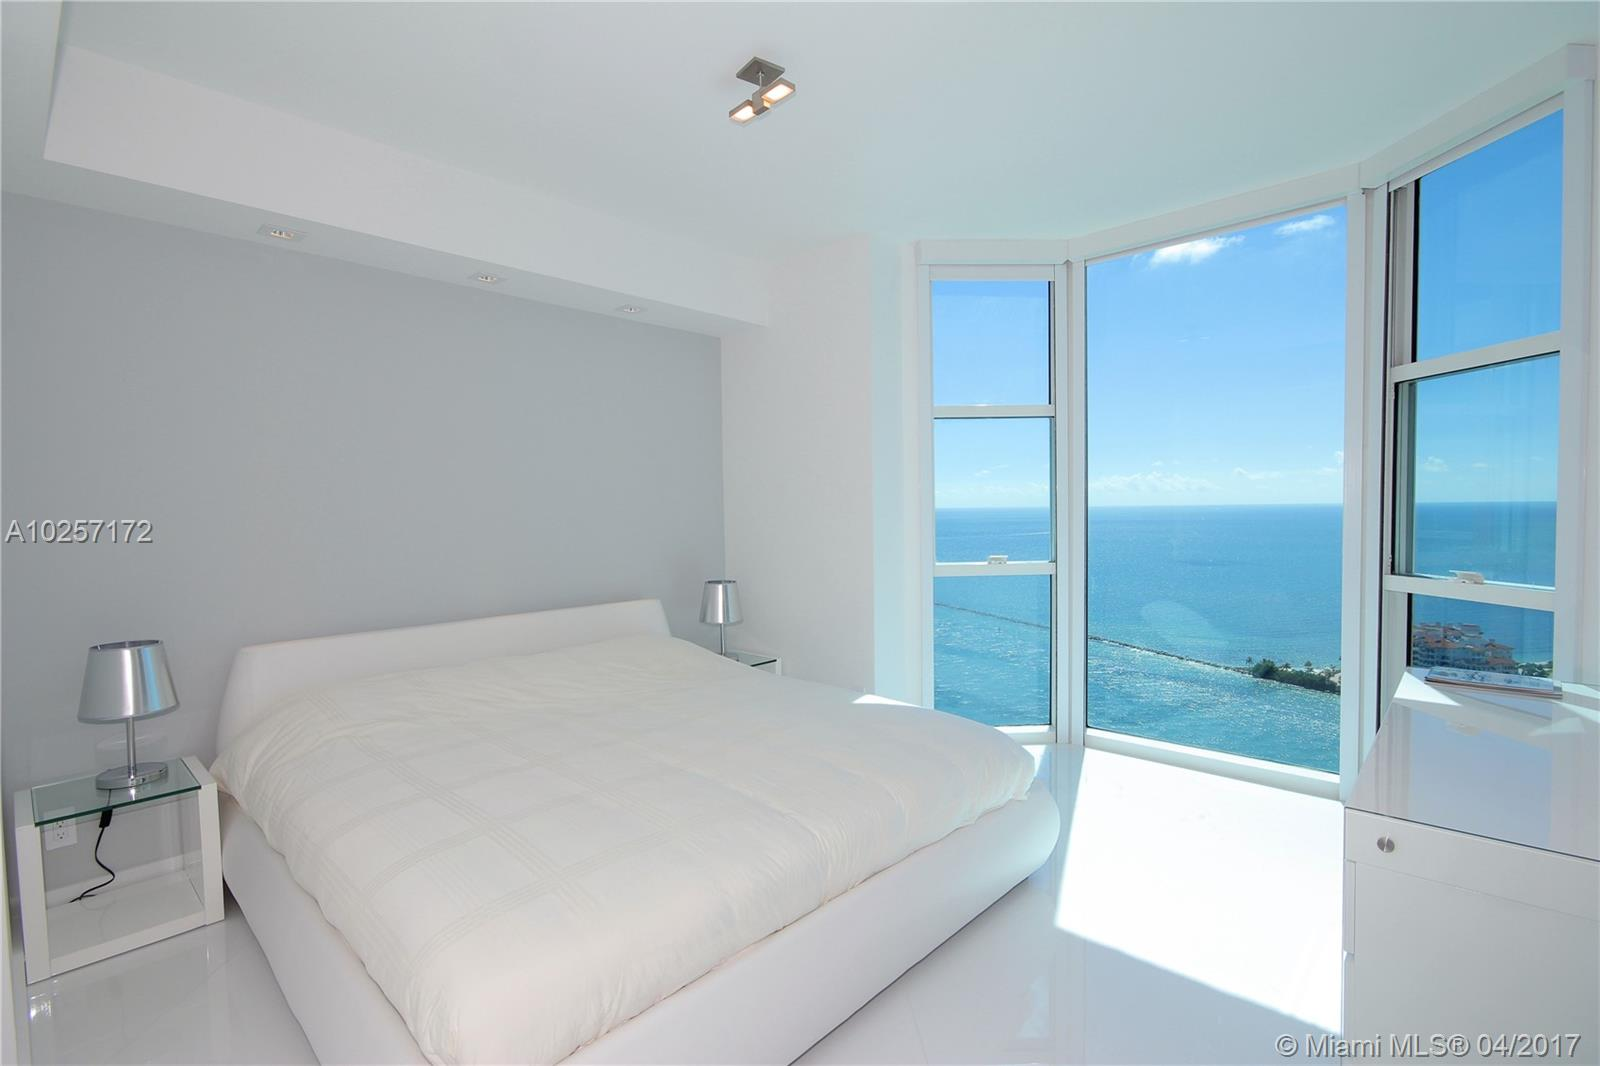 300 Pointe dr-LPH2 miami-beach--fl-33139-a10257172-Pic20